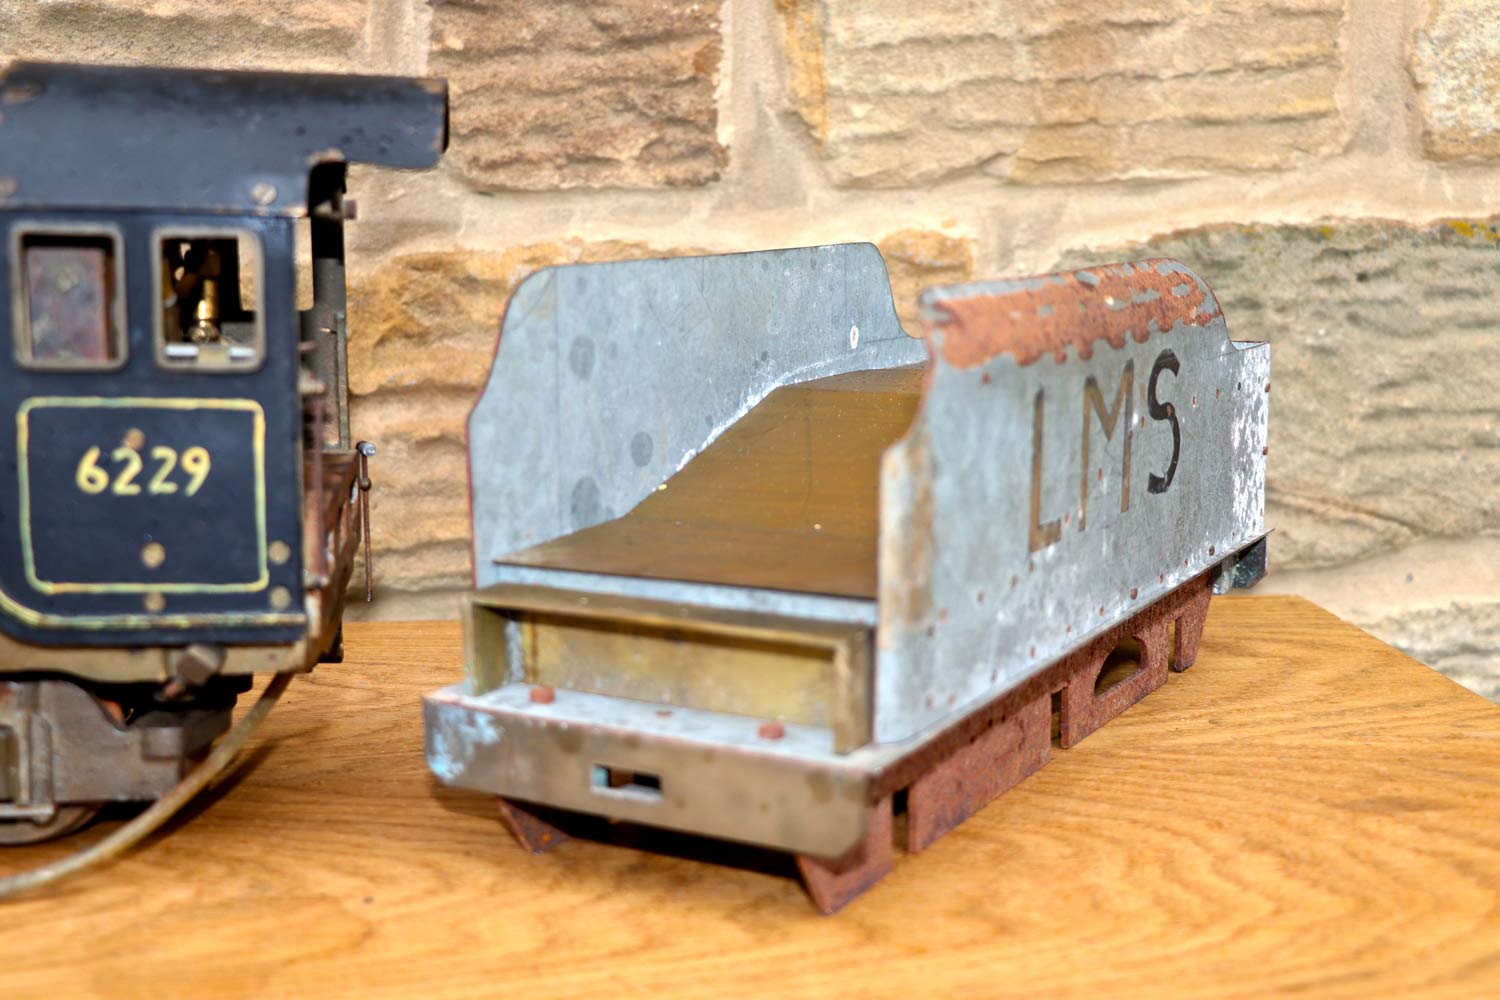 test 2-and-a-half-inch-gauge-LMS-Duchess-live-steam-locomotive-for-sale-08